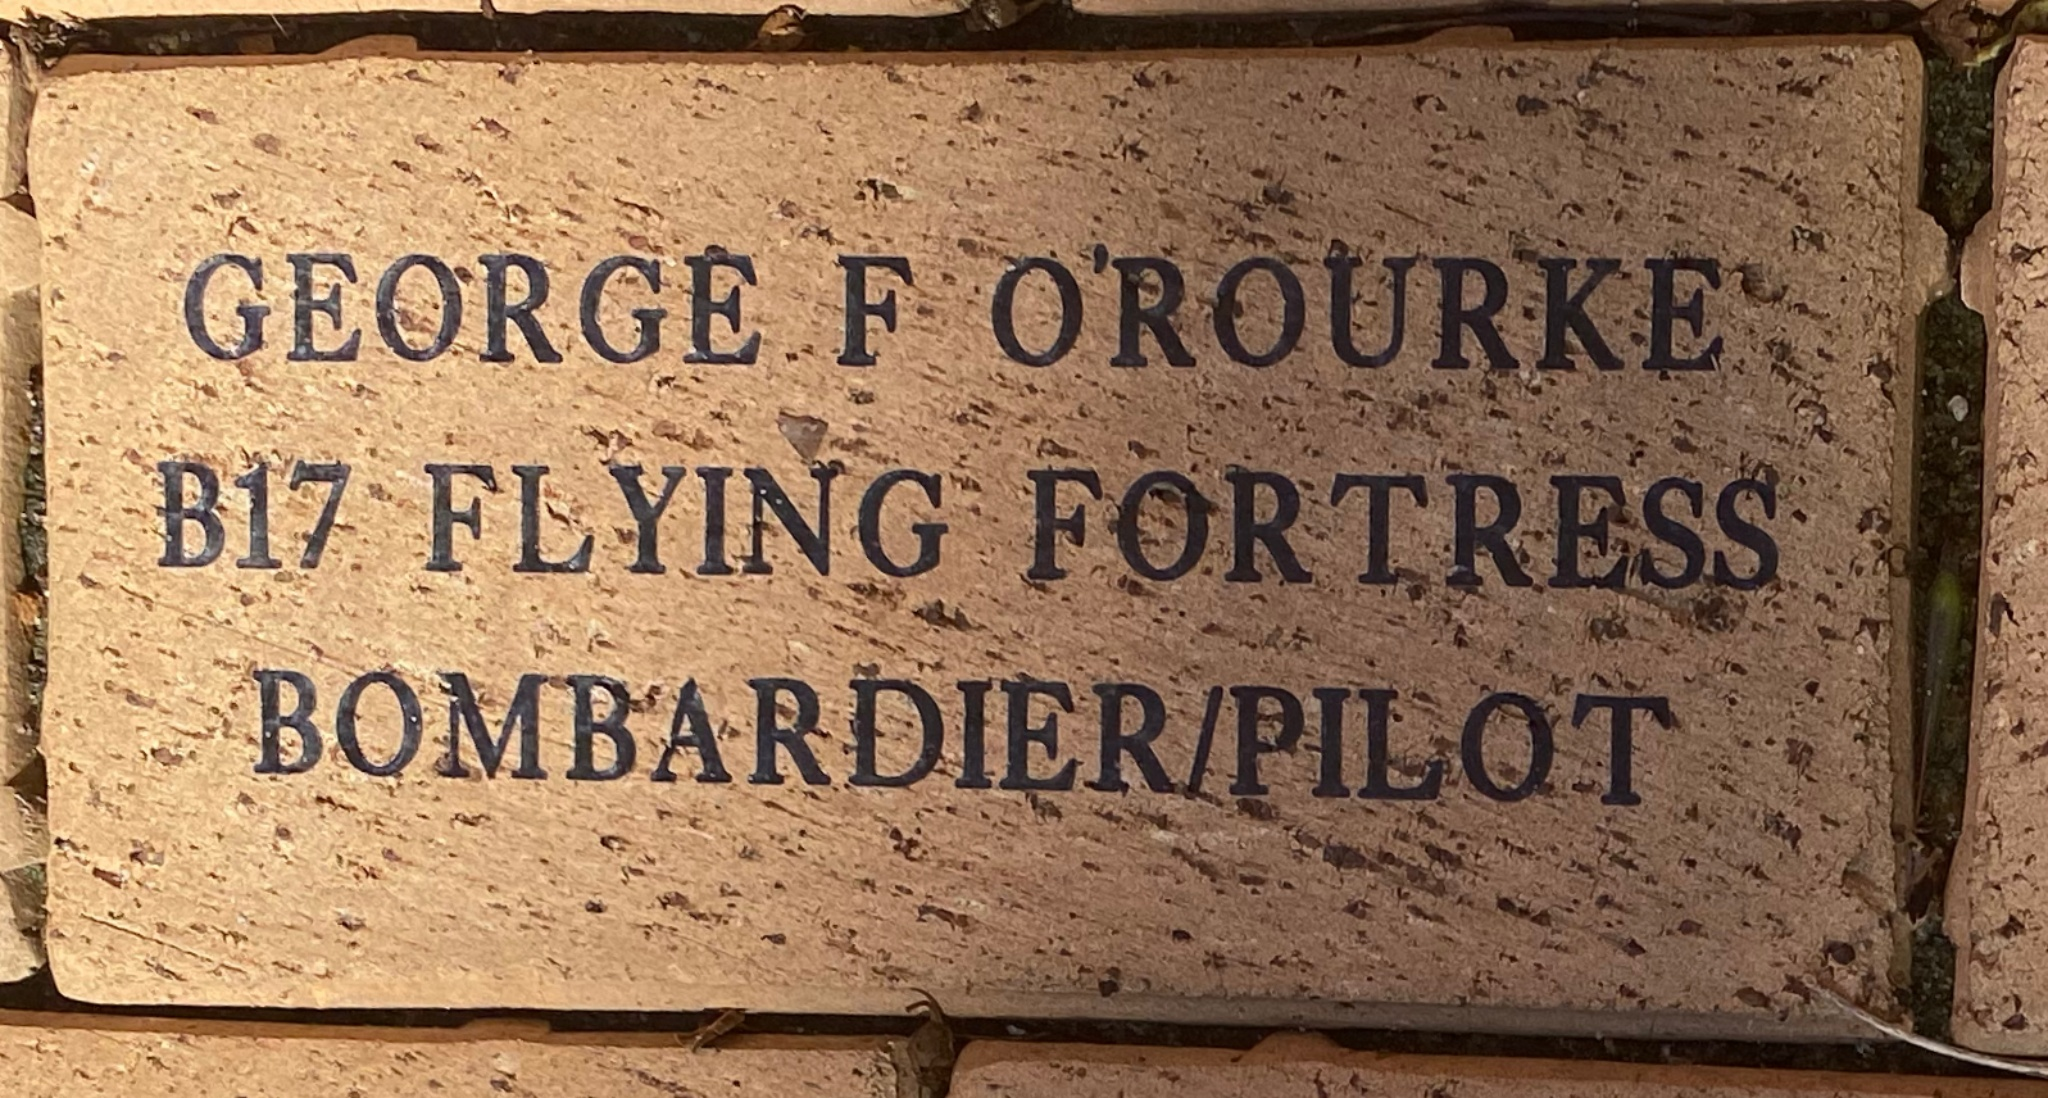 GEORGE F O''ROURKE B17 FLYING FORTRESS BOMBARDIER/PILOT